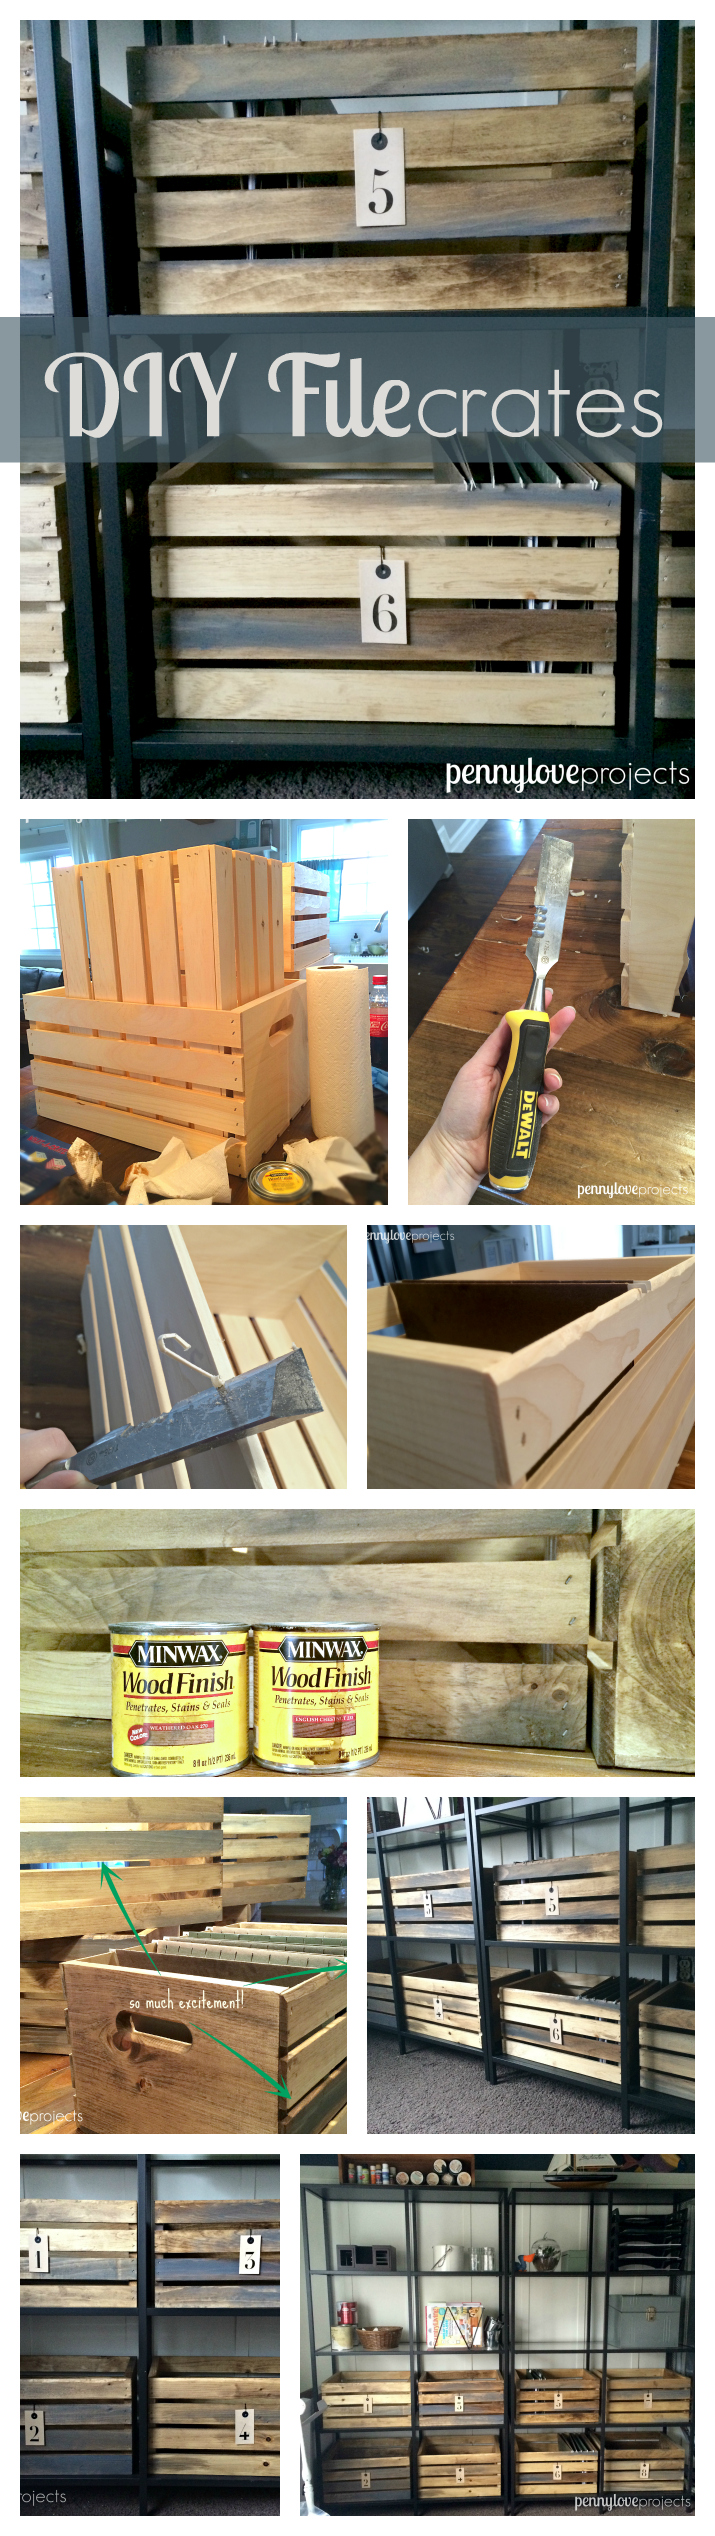 Home Office Makeover Series Part 5: DIY File Crates